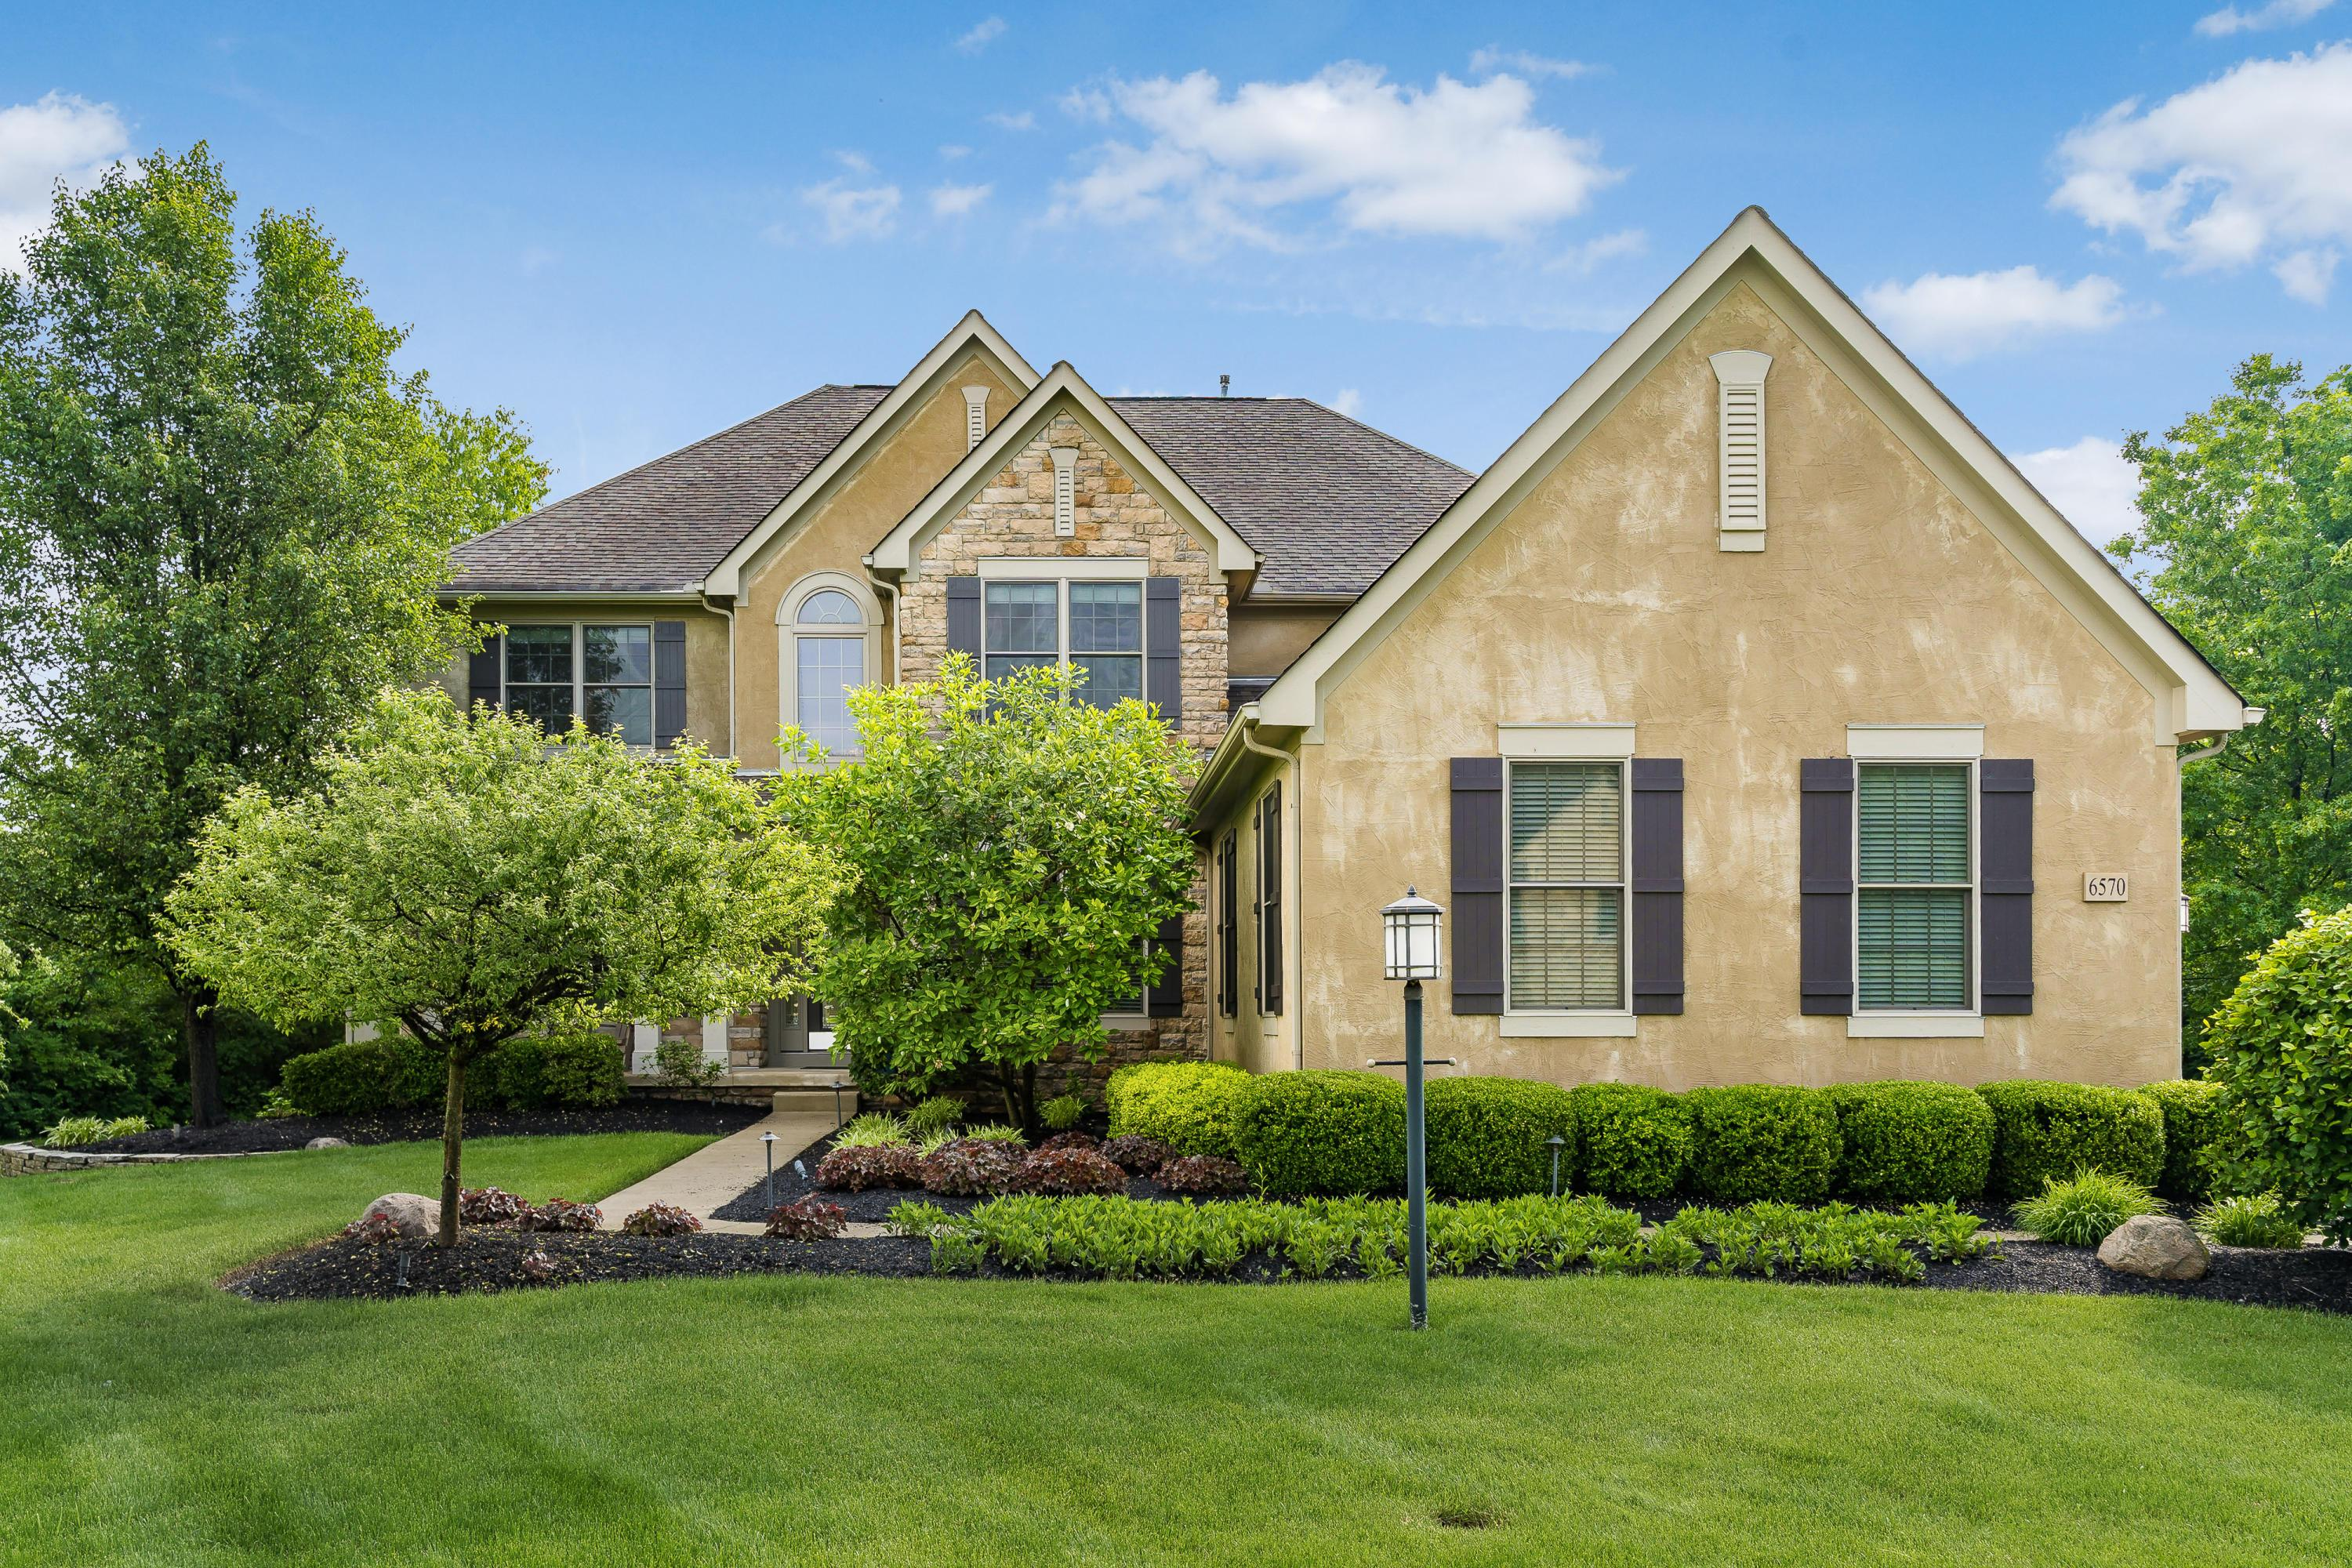 6570 Raynor Court, Dublin, Ohio 43017, 4 Bedrooms Bedrooms, ,5 BathroomsBathrooms,Residential,For Sale,Raynor,220017779